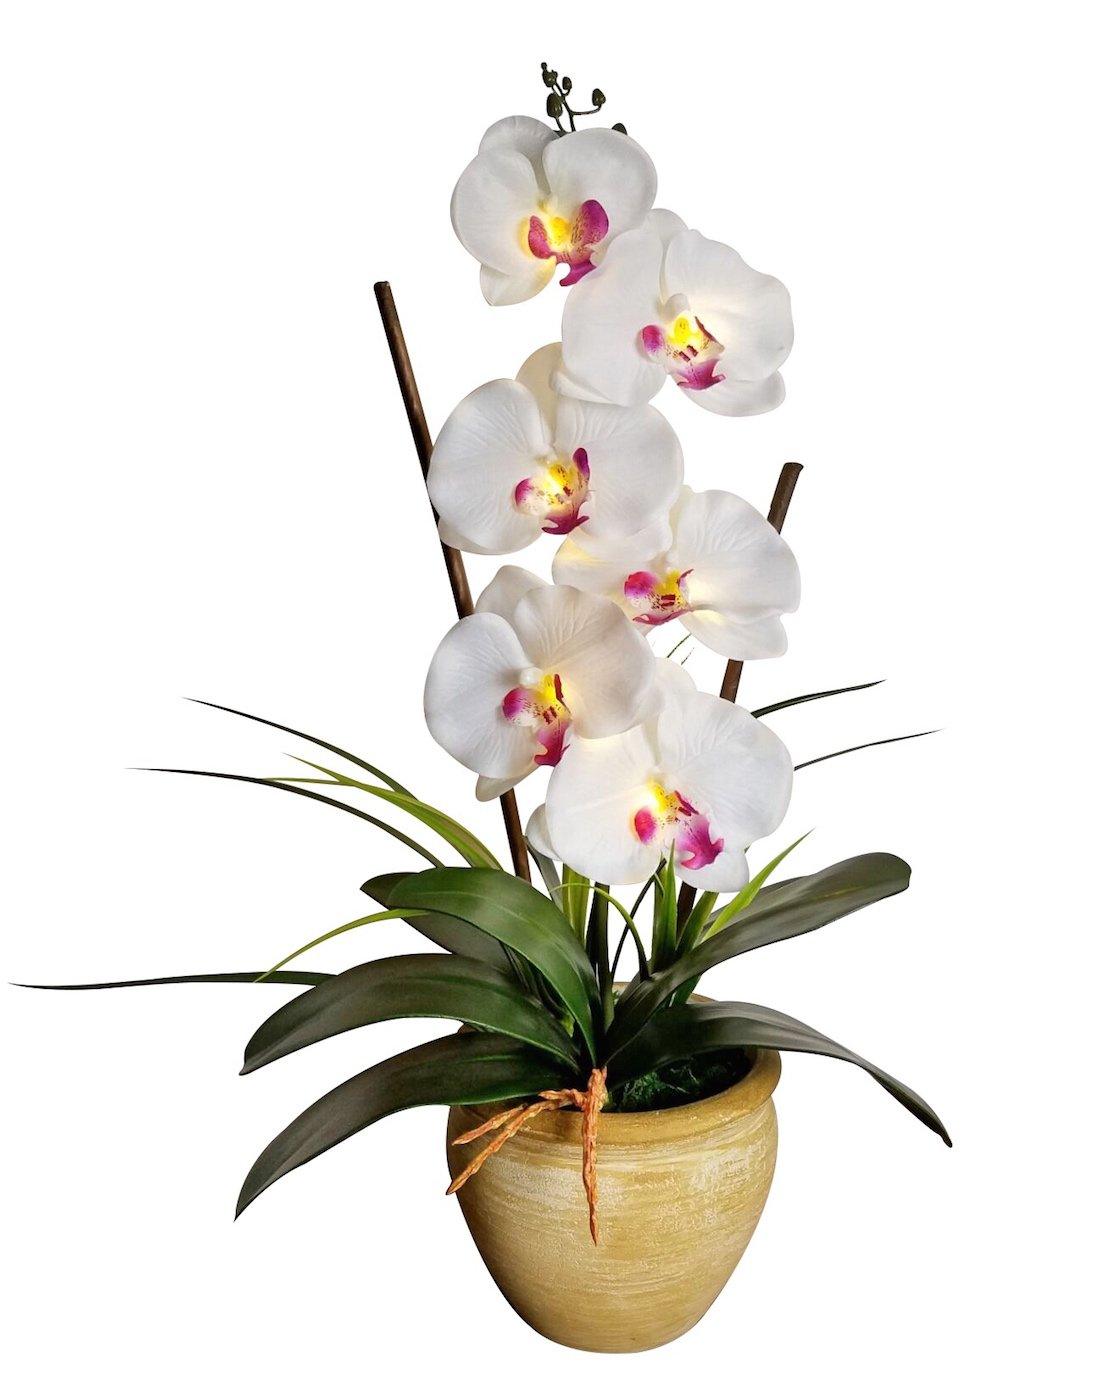 Homeseasons LED Pre Lit Lighted Single Stem Phalaenopsis Silk Orchid Arrangement-Battery Operated Lighted Artificial Orchid Plant(White) by Homeseasons